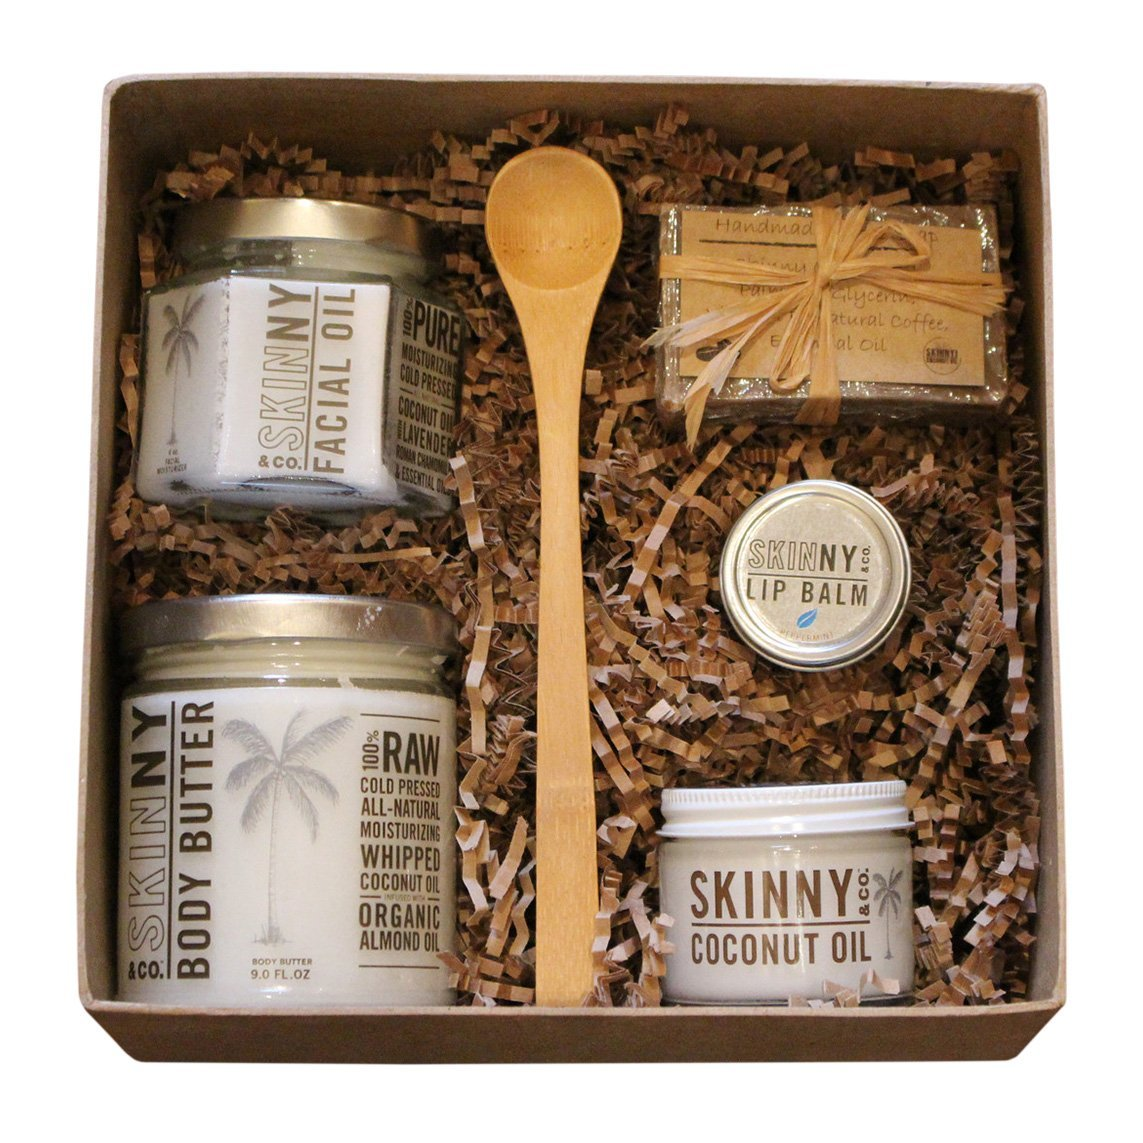 Skinny gift set coconut oil